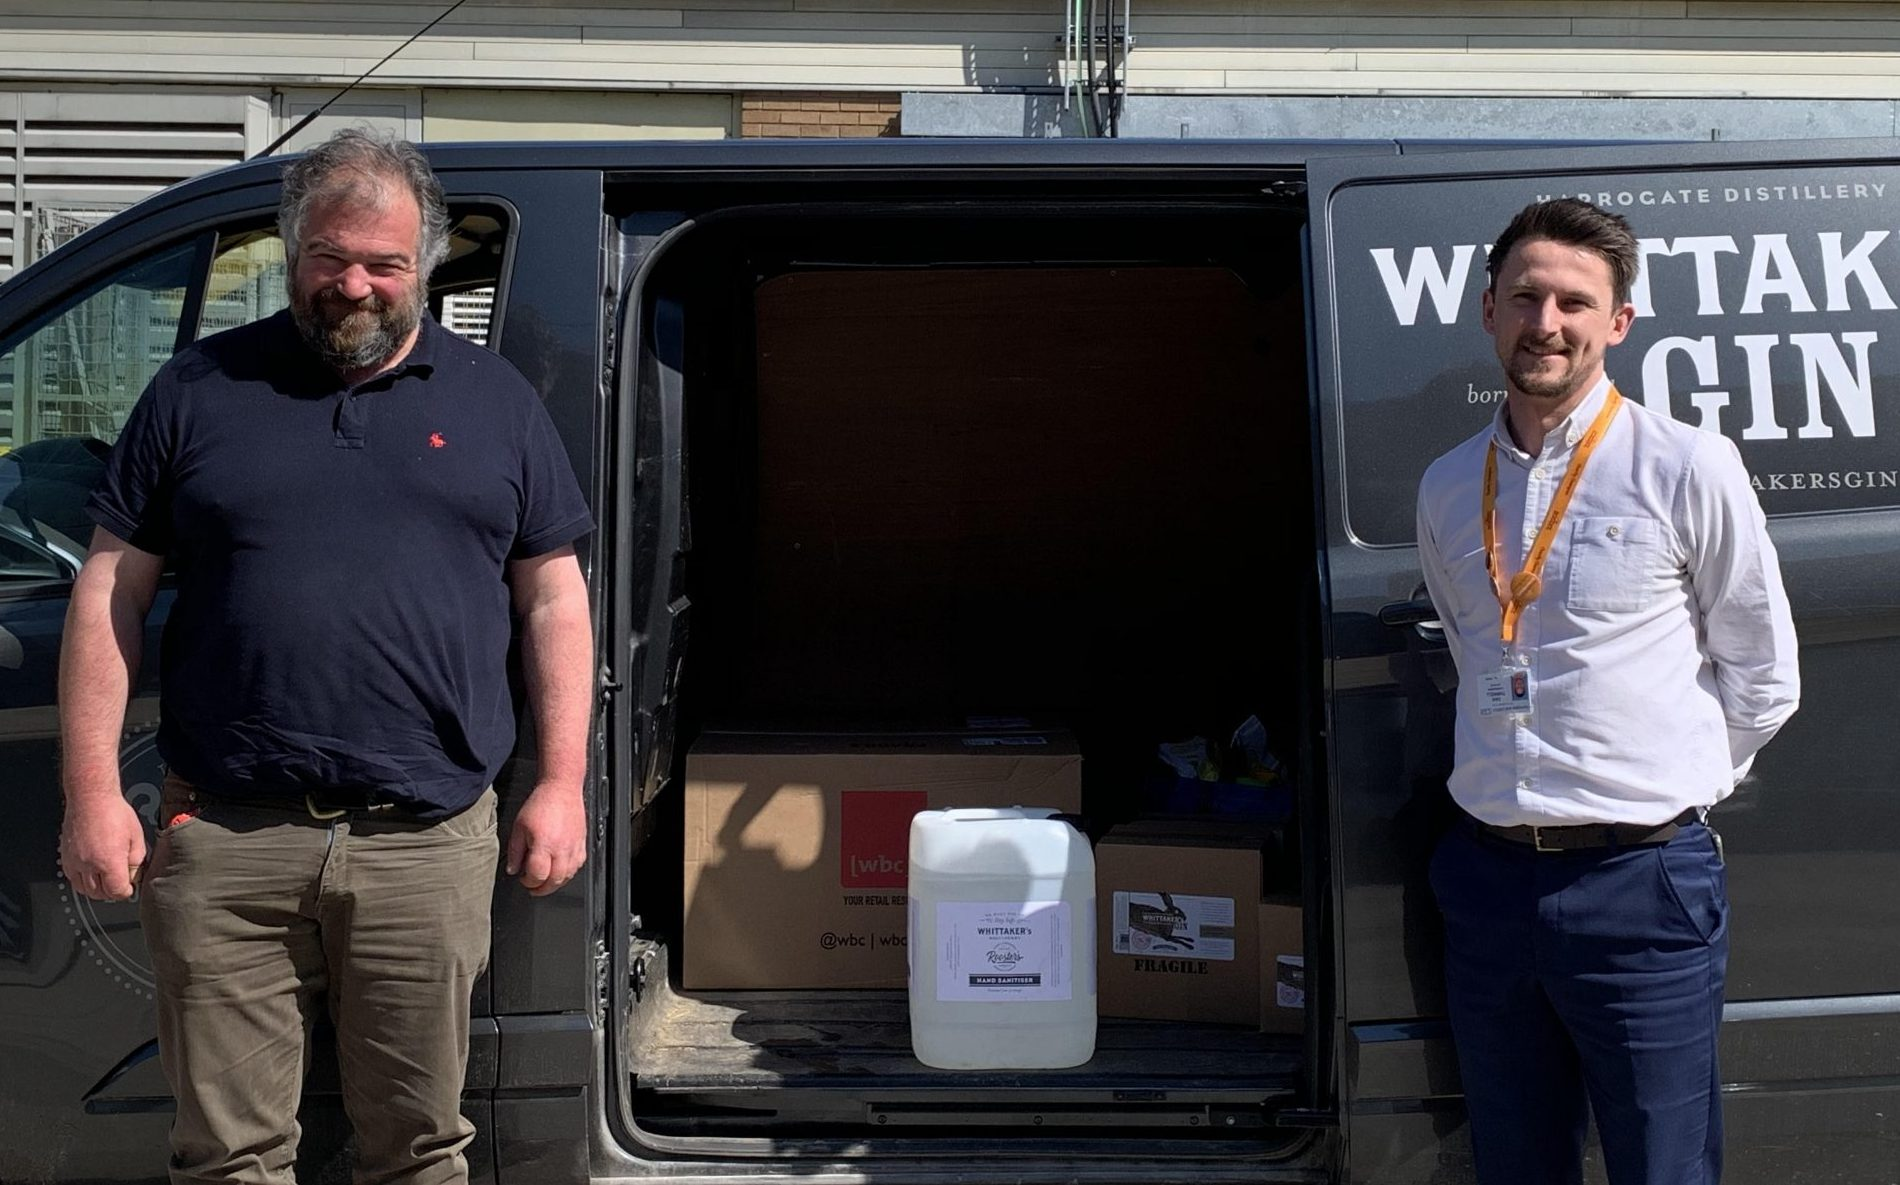 L-r Toby Whittaker of Whittaker's Gin delivers the hand sanitiser to Dan Thirkell, charity fundraising manager at the Harrogate & District NHS Foundation Trust